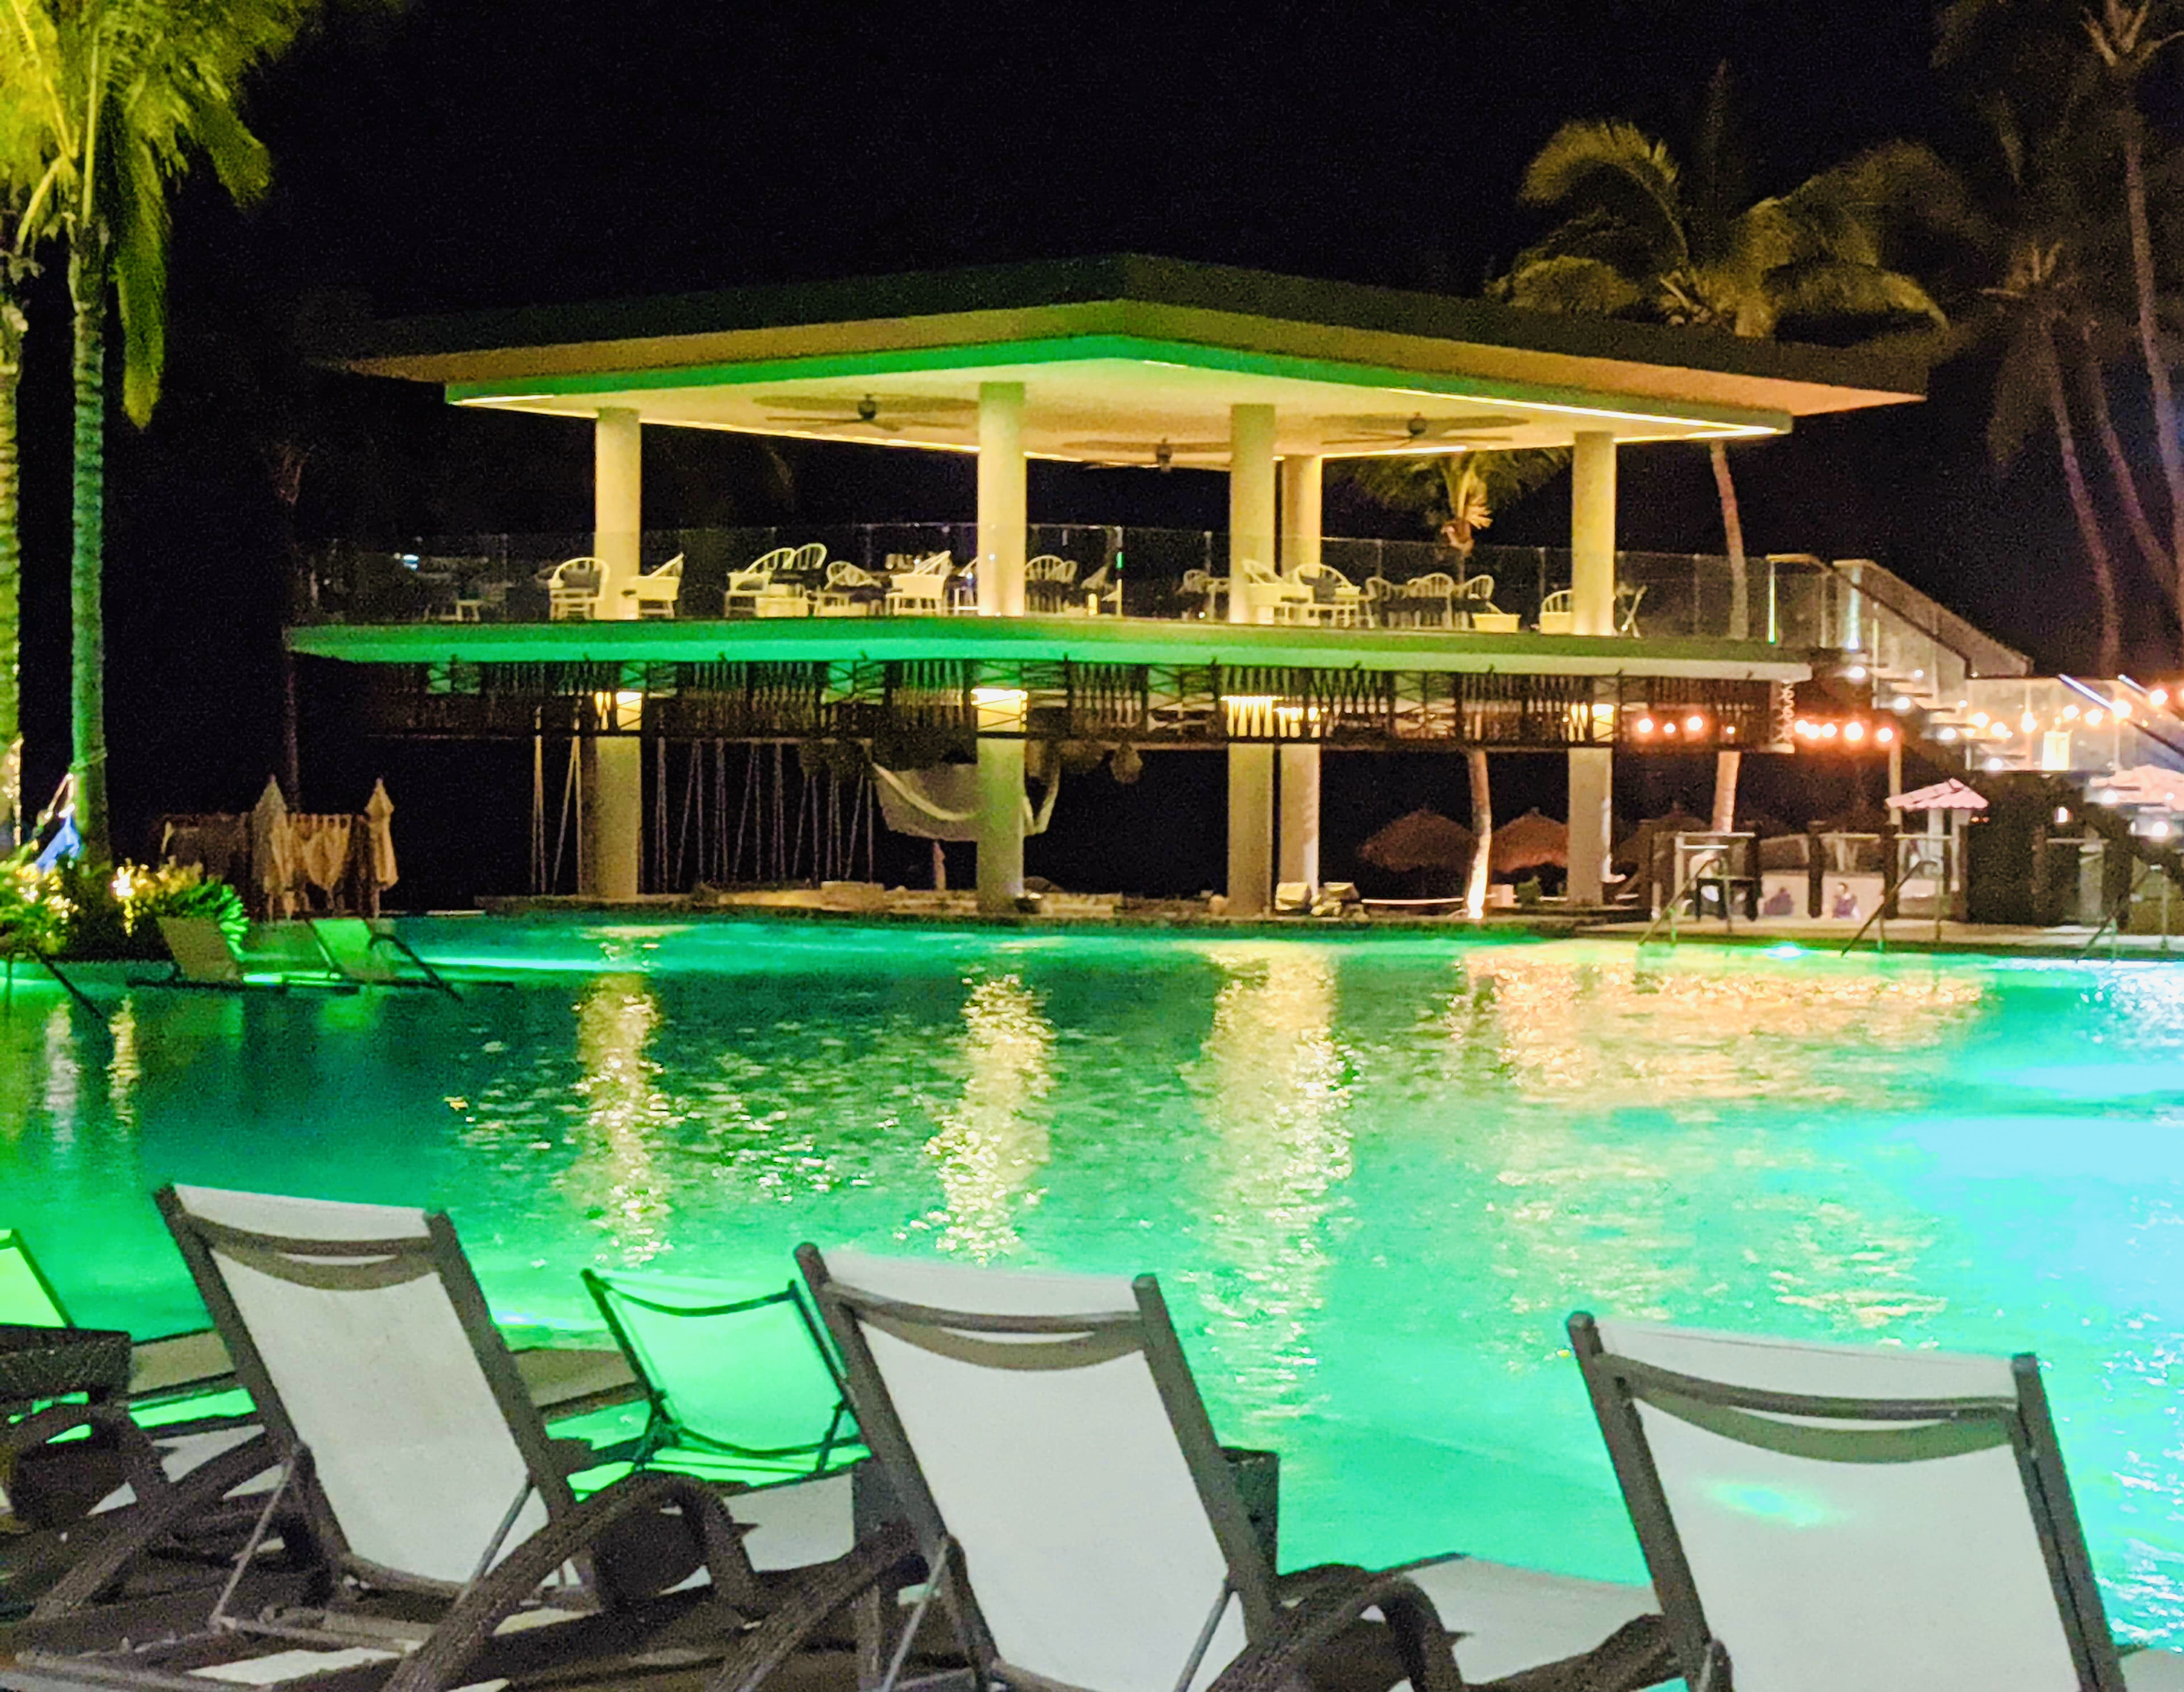 The pool area at night, looking over to the outdoor restaurant